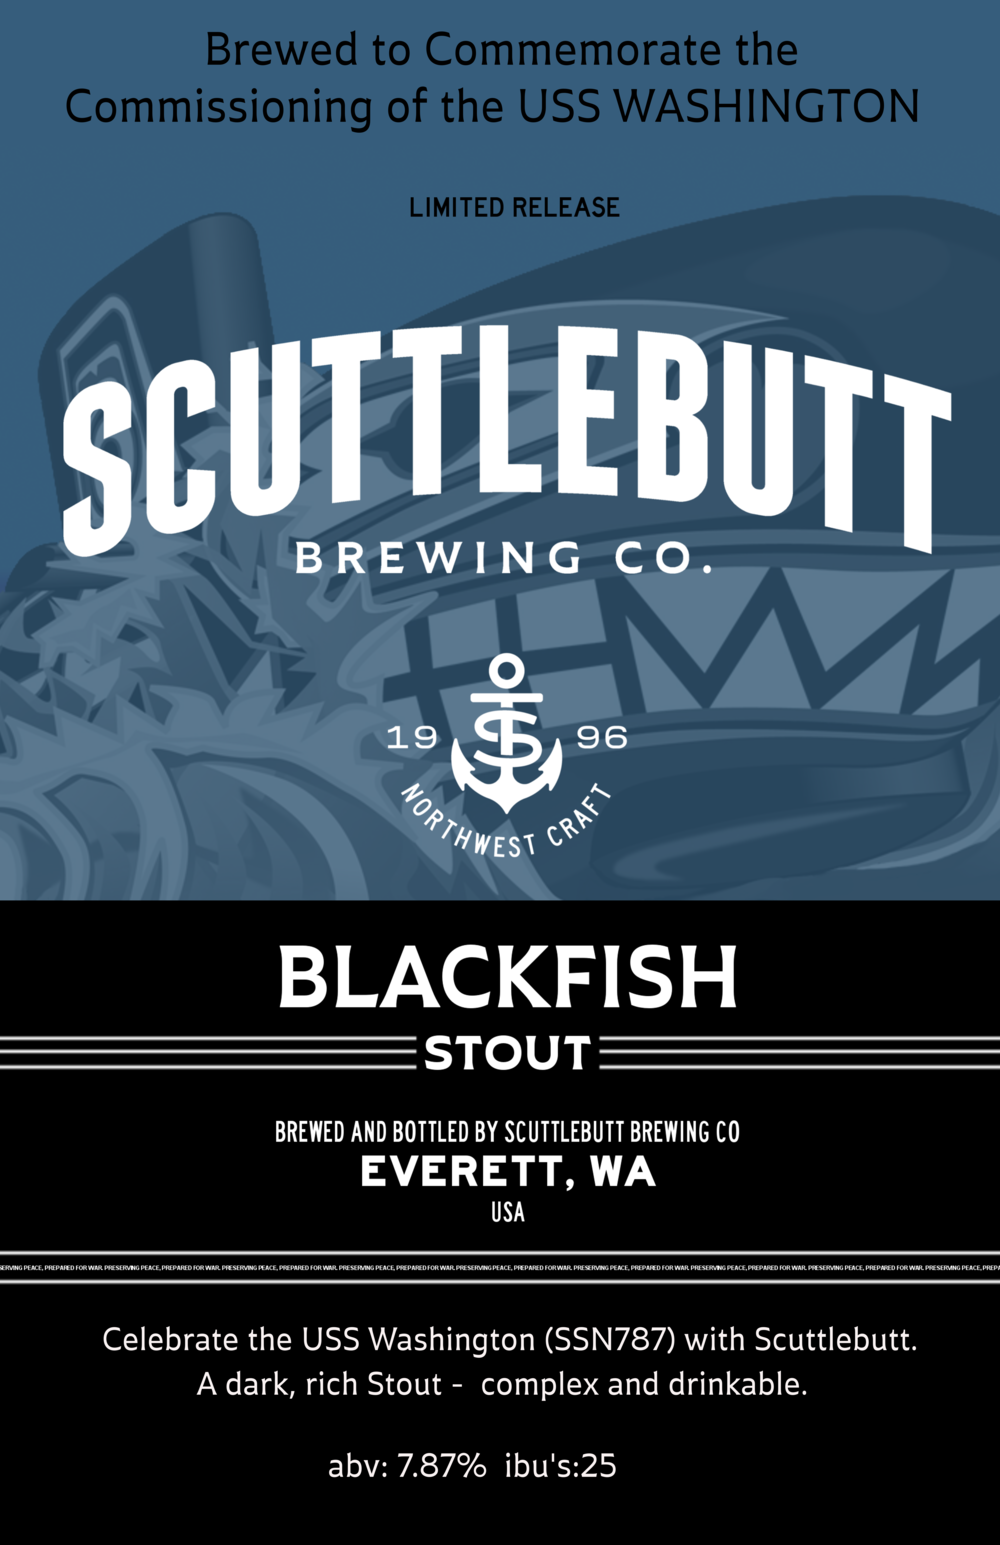 image courtesy Scuttlebutt Brewing Company